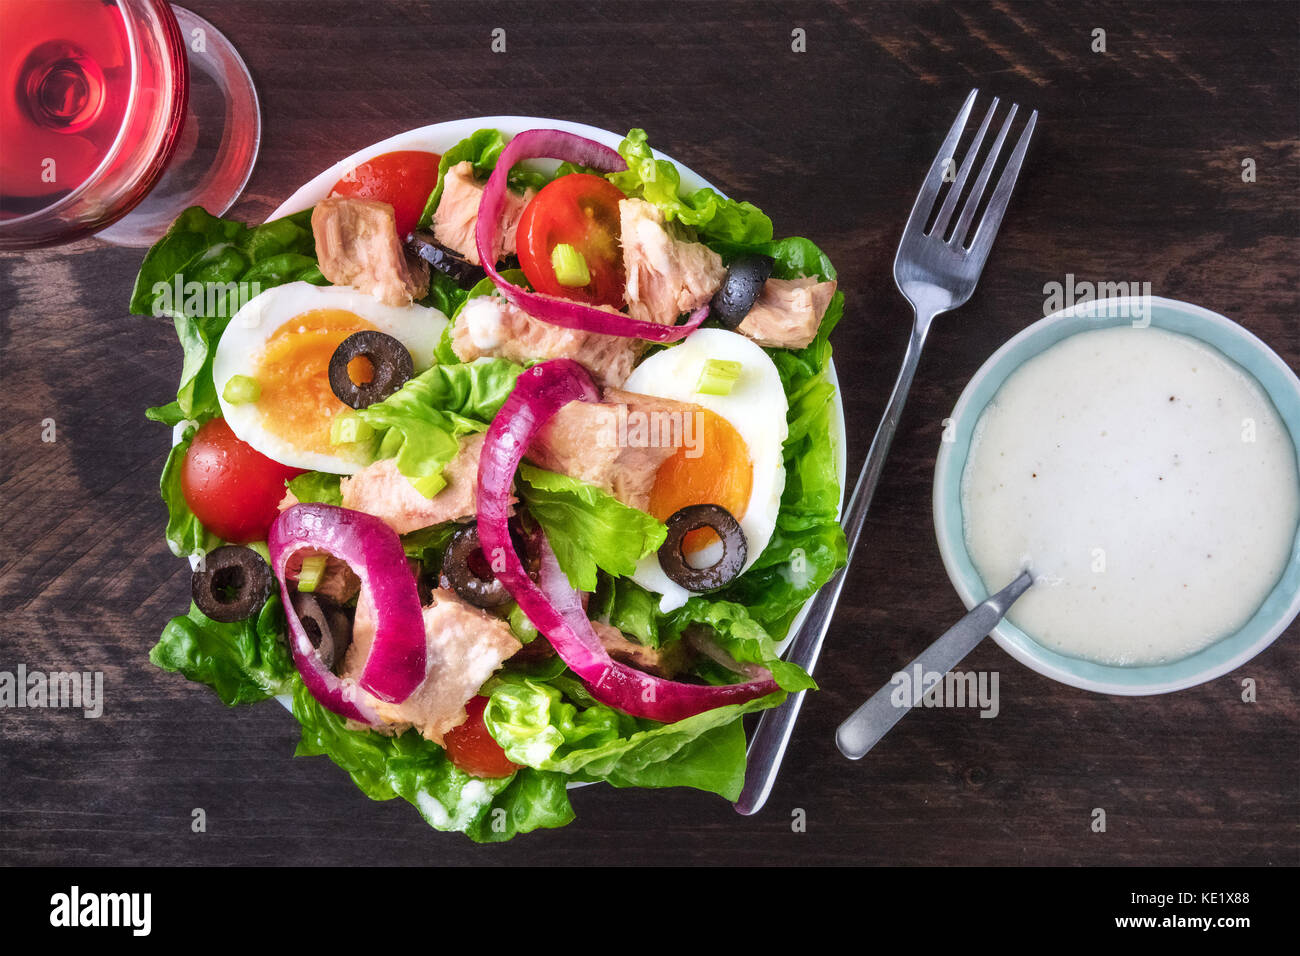 Overhead photo of tuna salad with rose wine, fork, sauce - Stock Image